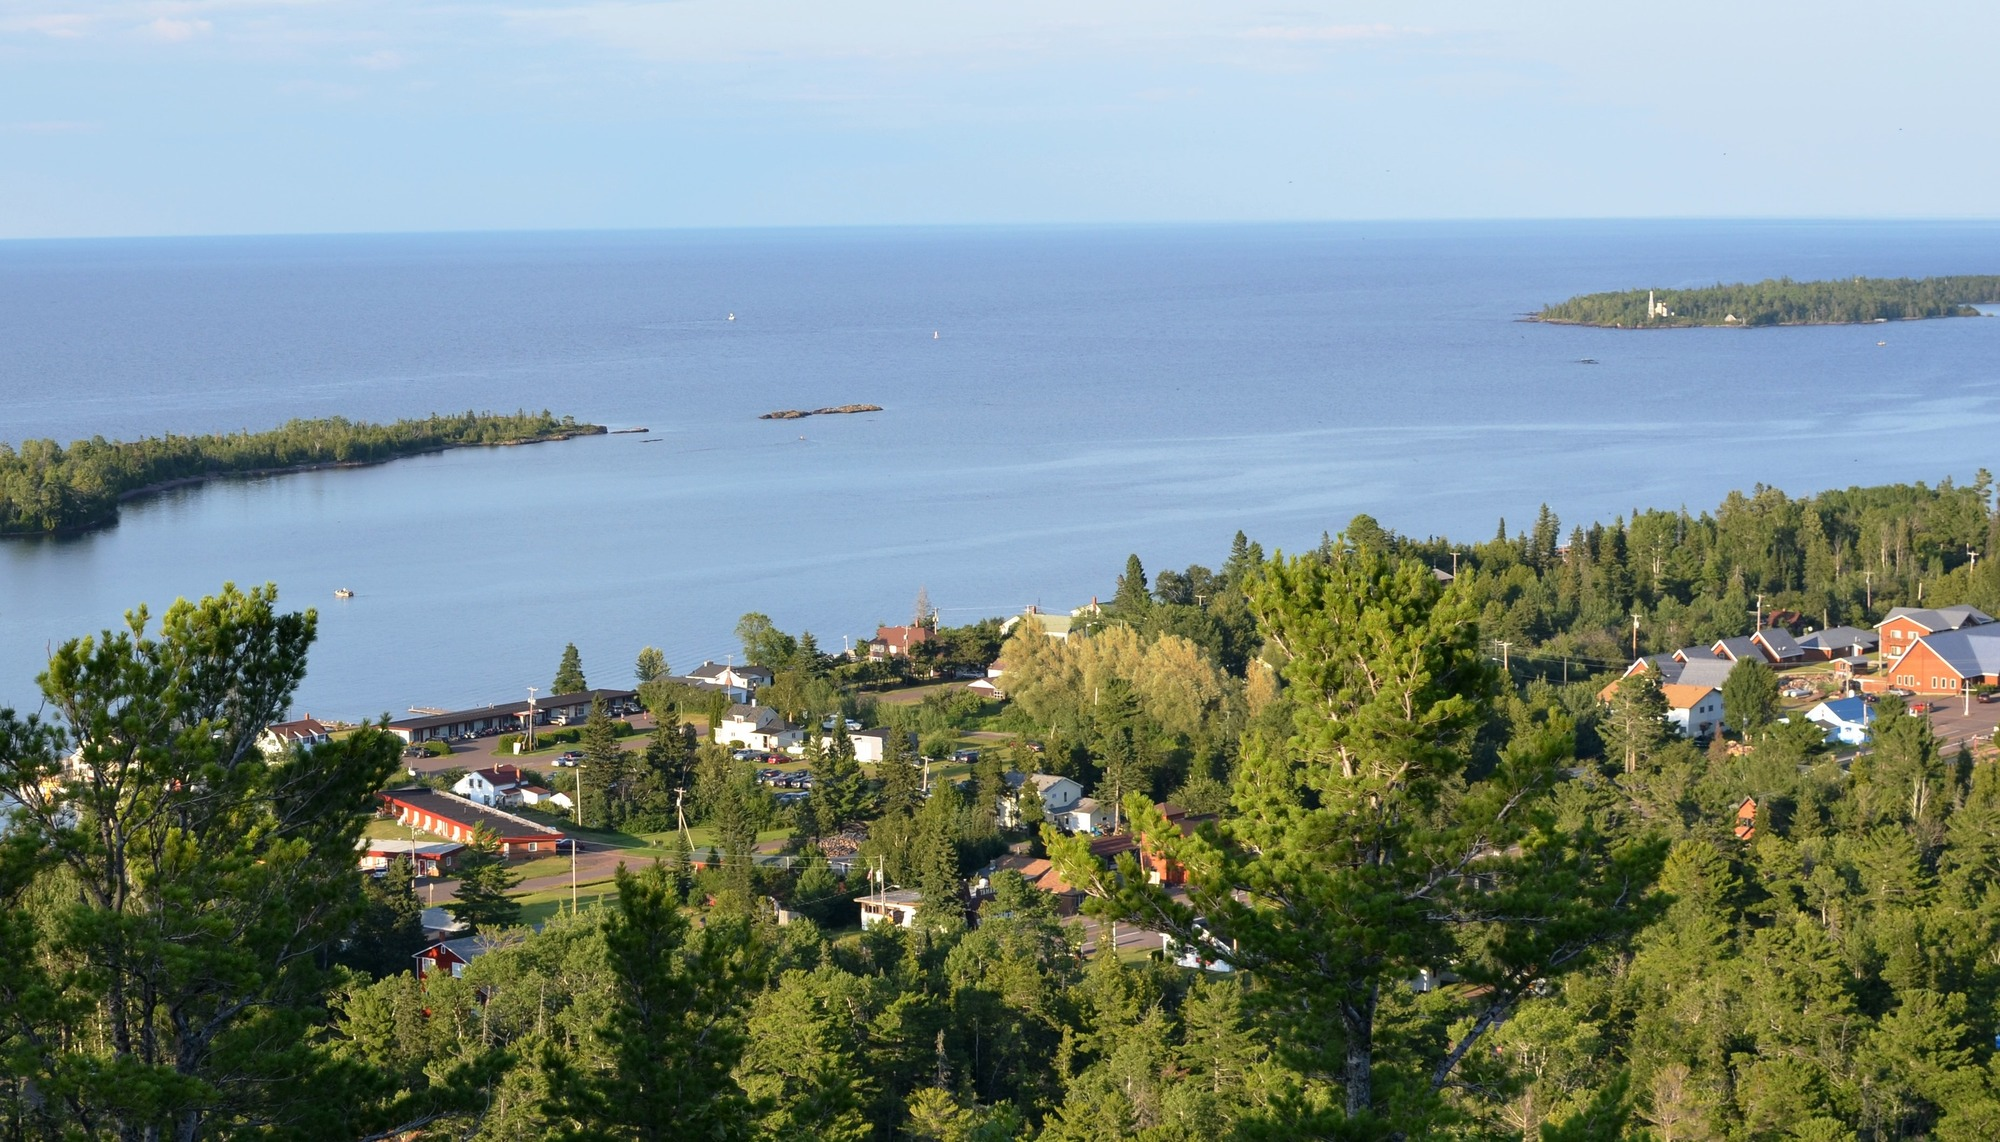 Picturesque Copper Harbor is shown viewed from Brockway Mountain